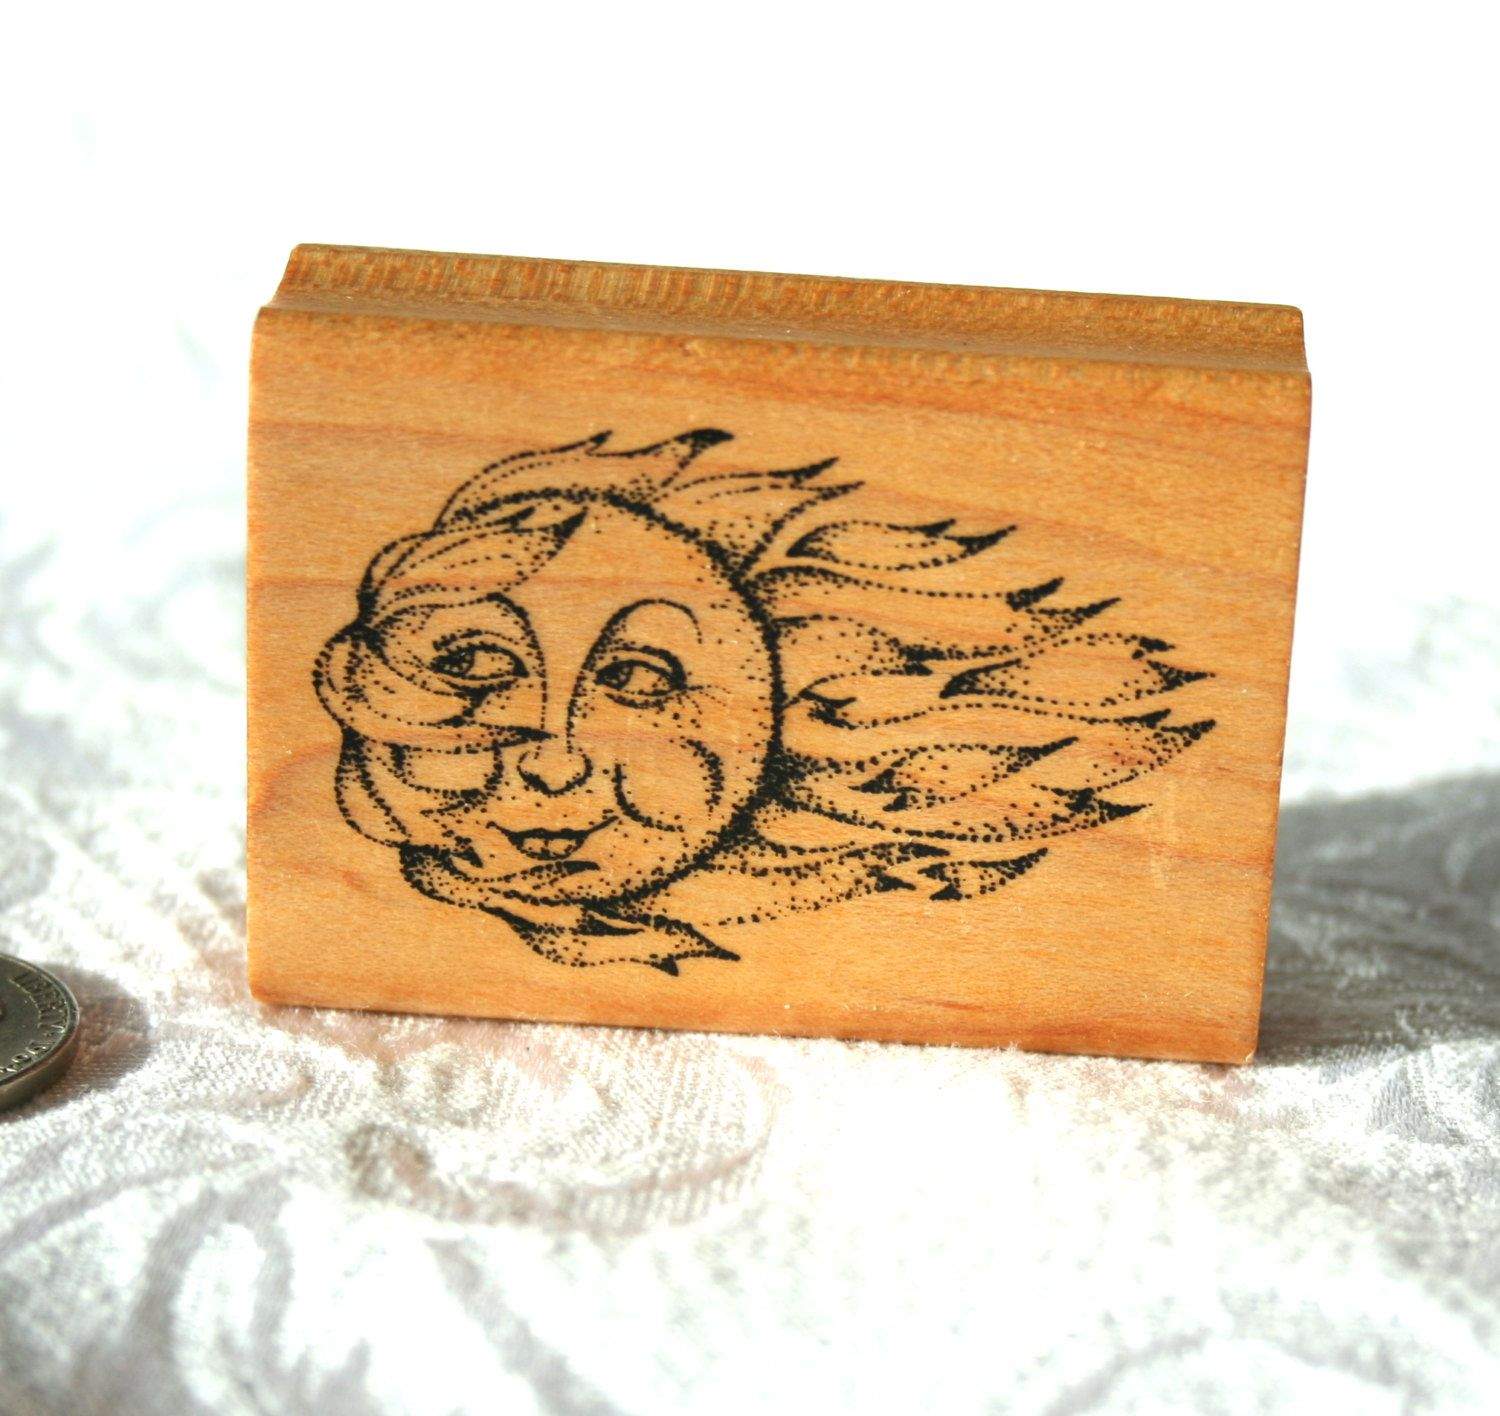 Rubber stamp craft supplies - Sun Face By Comotion Rubber Stamp Cosmic Stamp Sun Stamp Windy Sun